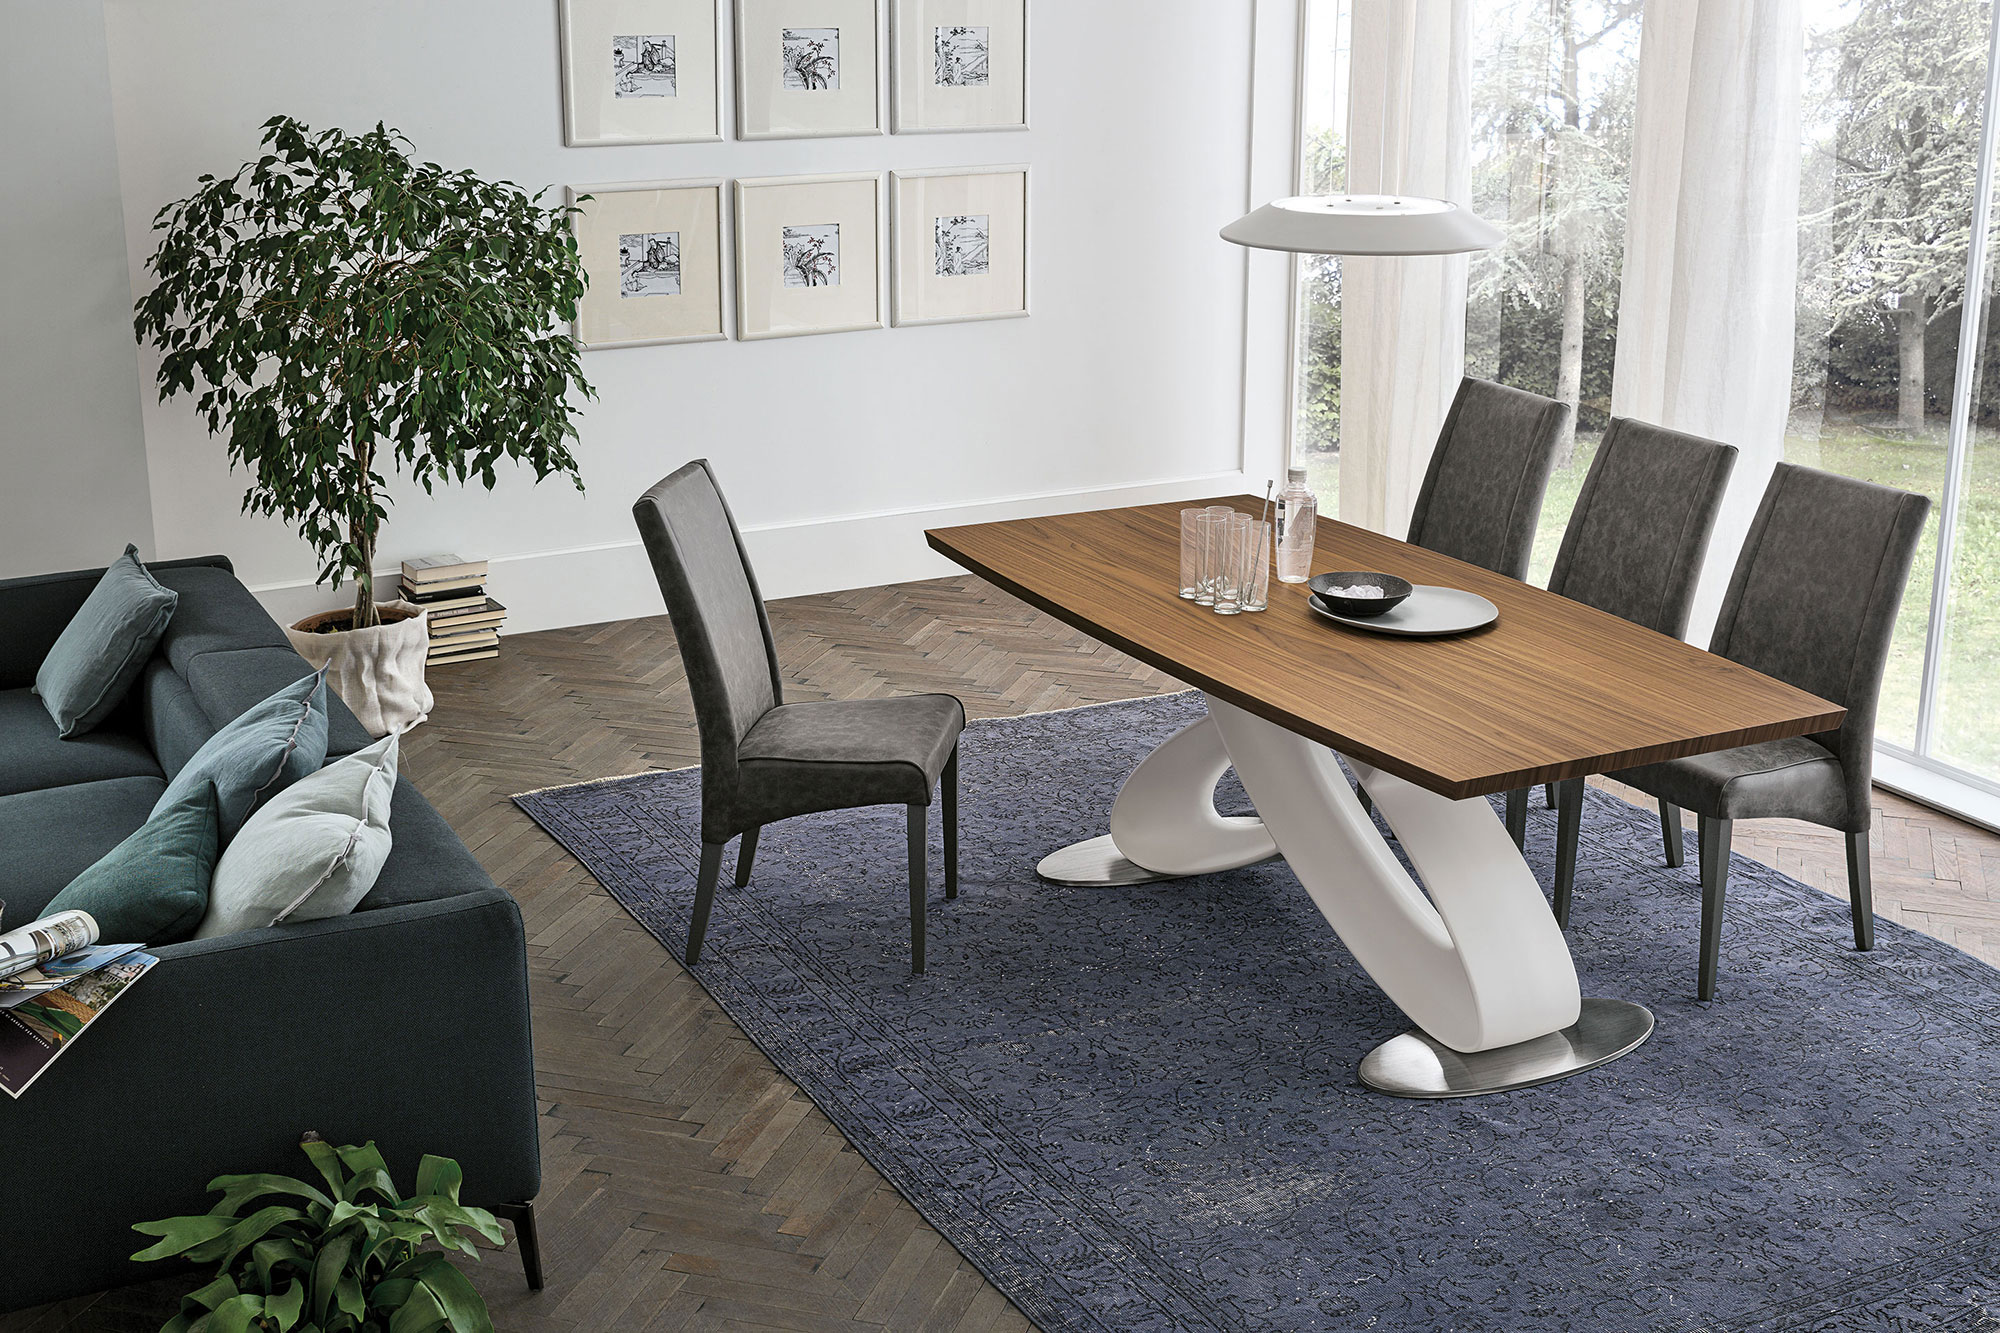 table, modern table, wooden table, white legs,  trapezi, chairs, grey chairs, karekles, accessories, dining table, kitchen table, andreotti, andreotti furniture, epipla, furniture, limassol, cyprus